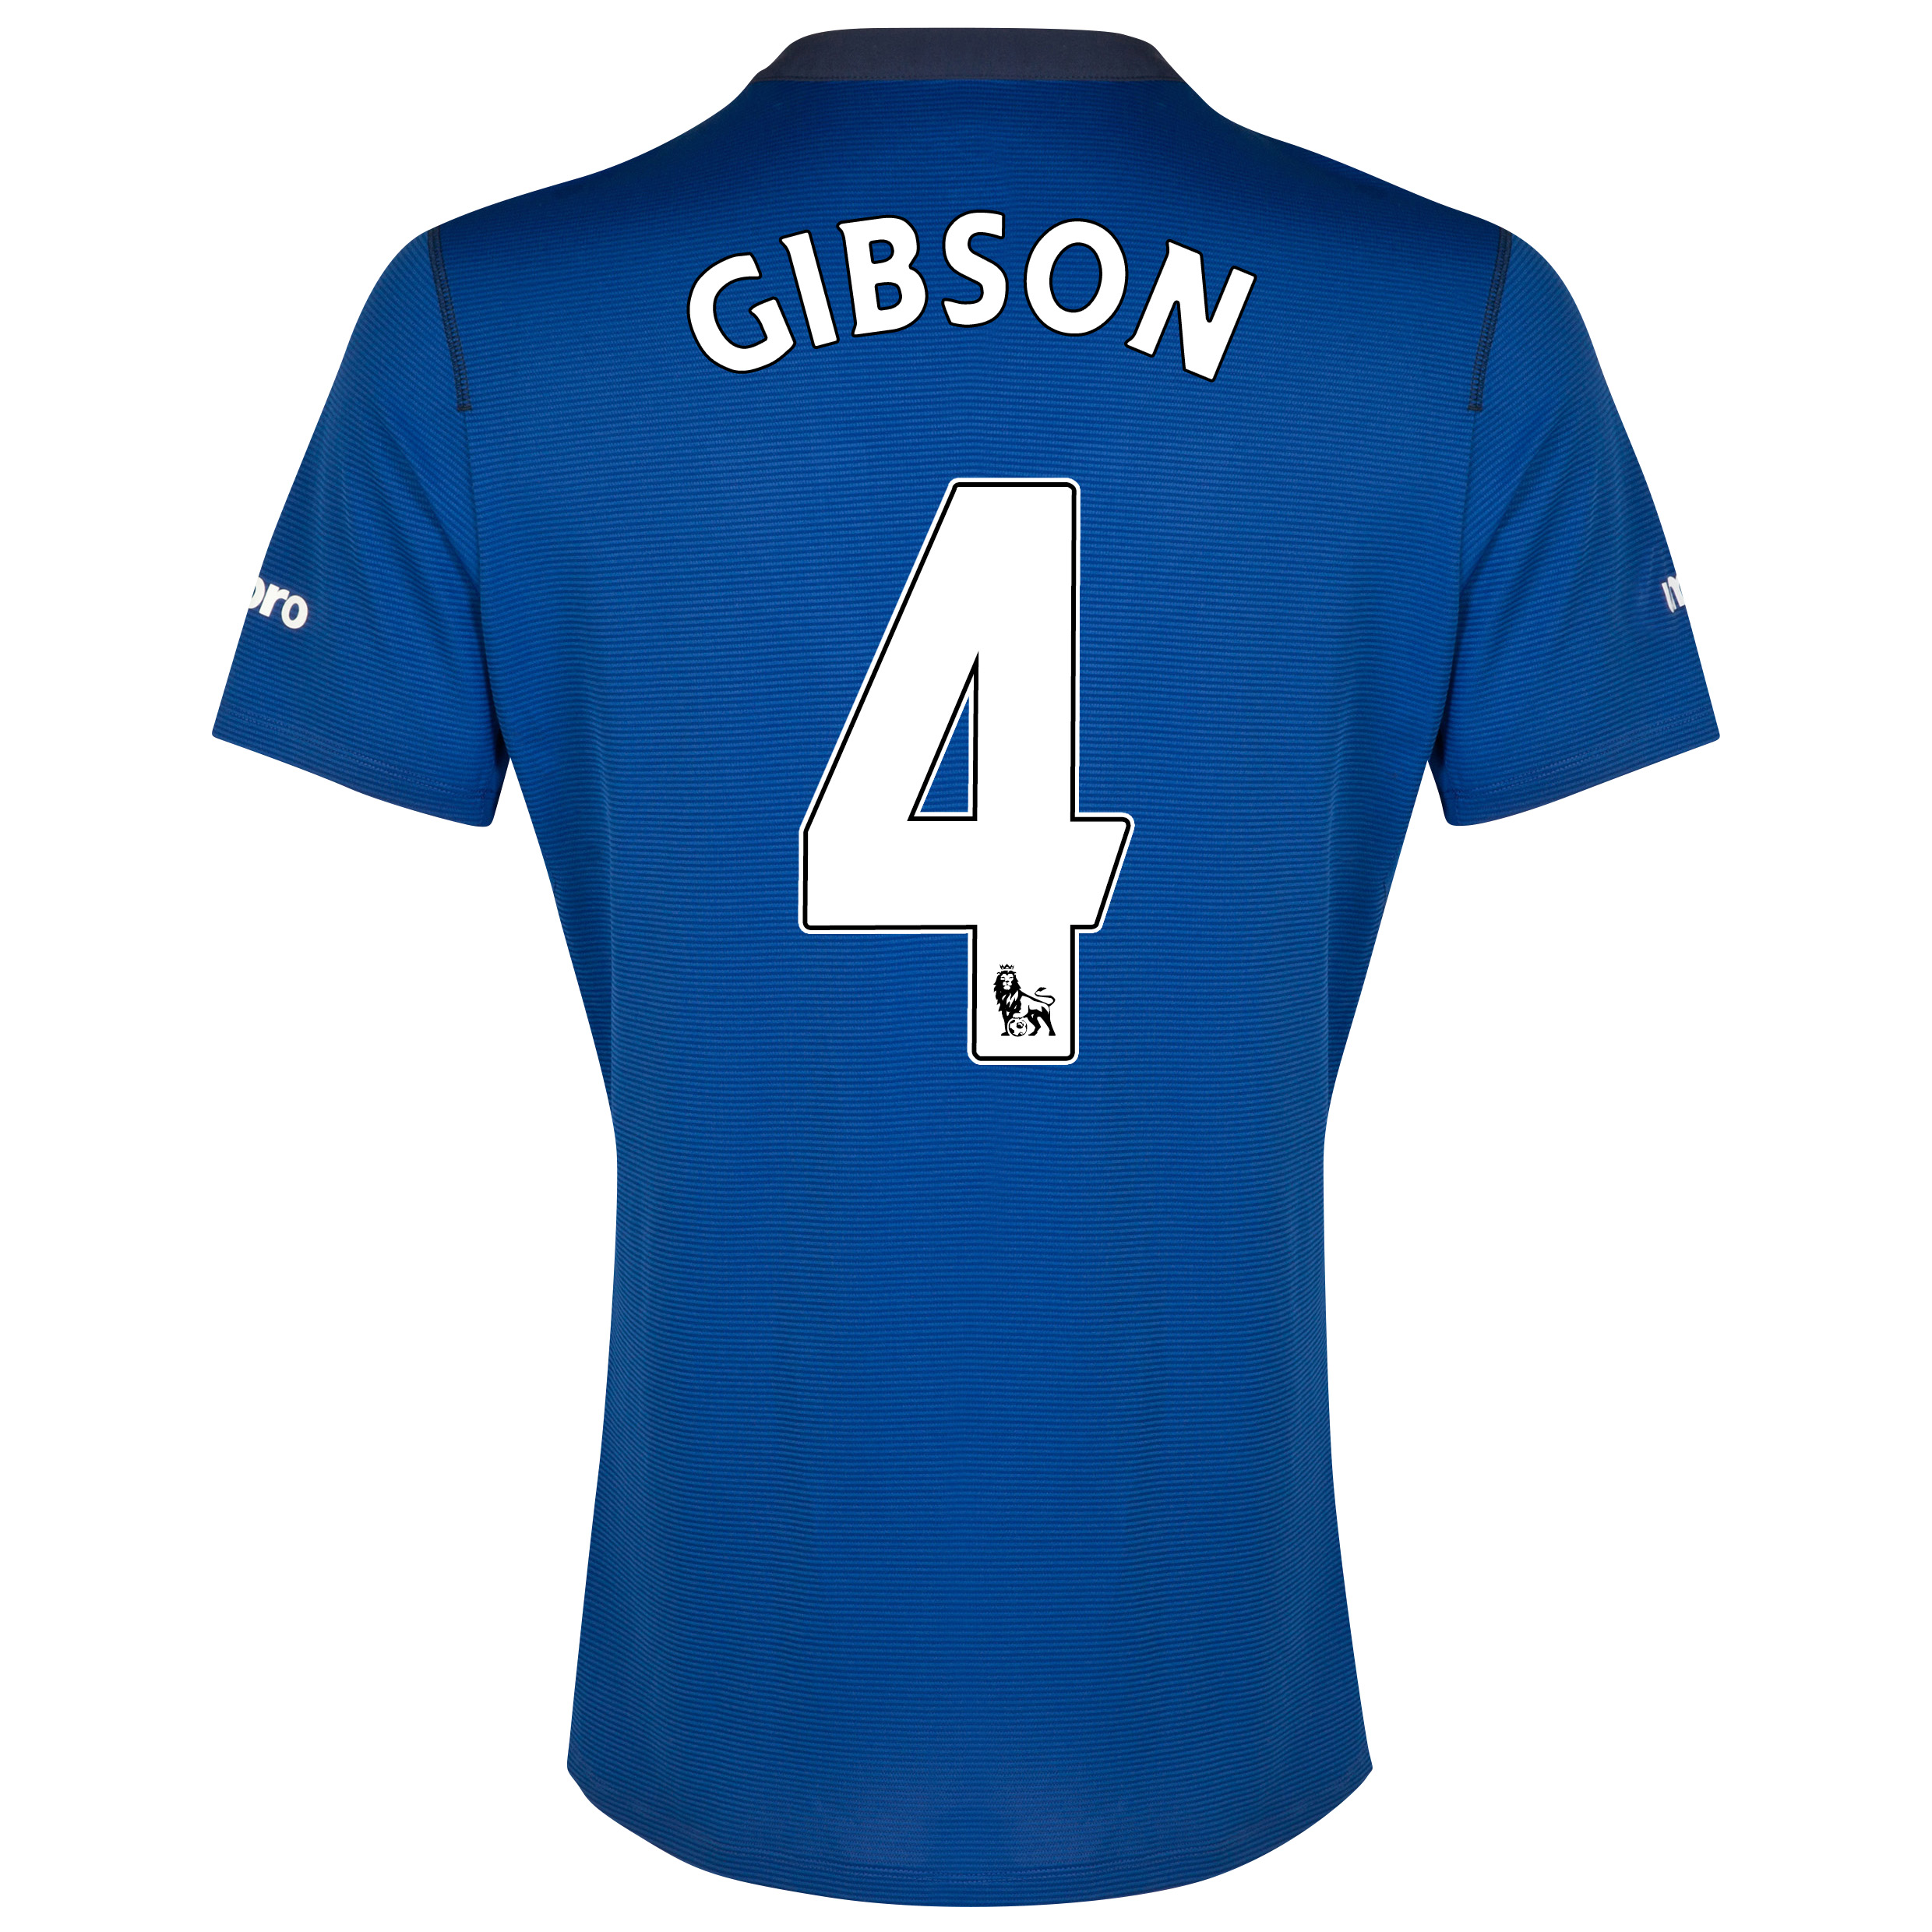 Everton SS Home Shirt 2014/15 with Gibson 4 printing